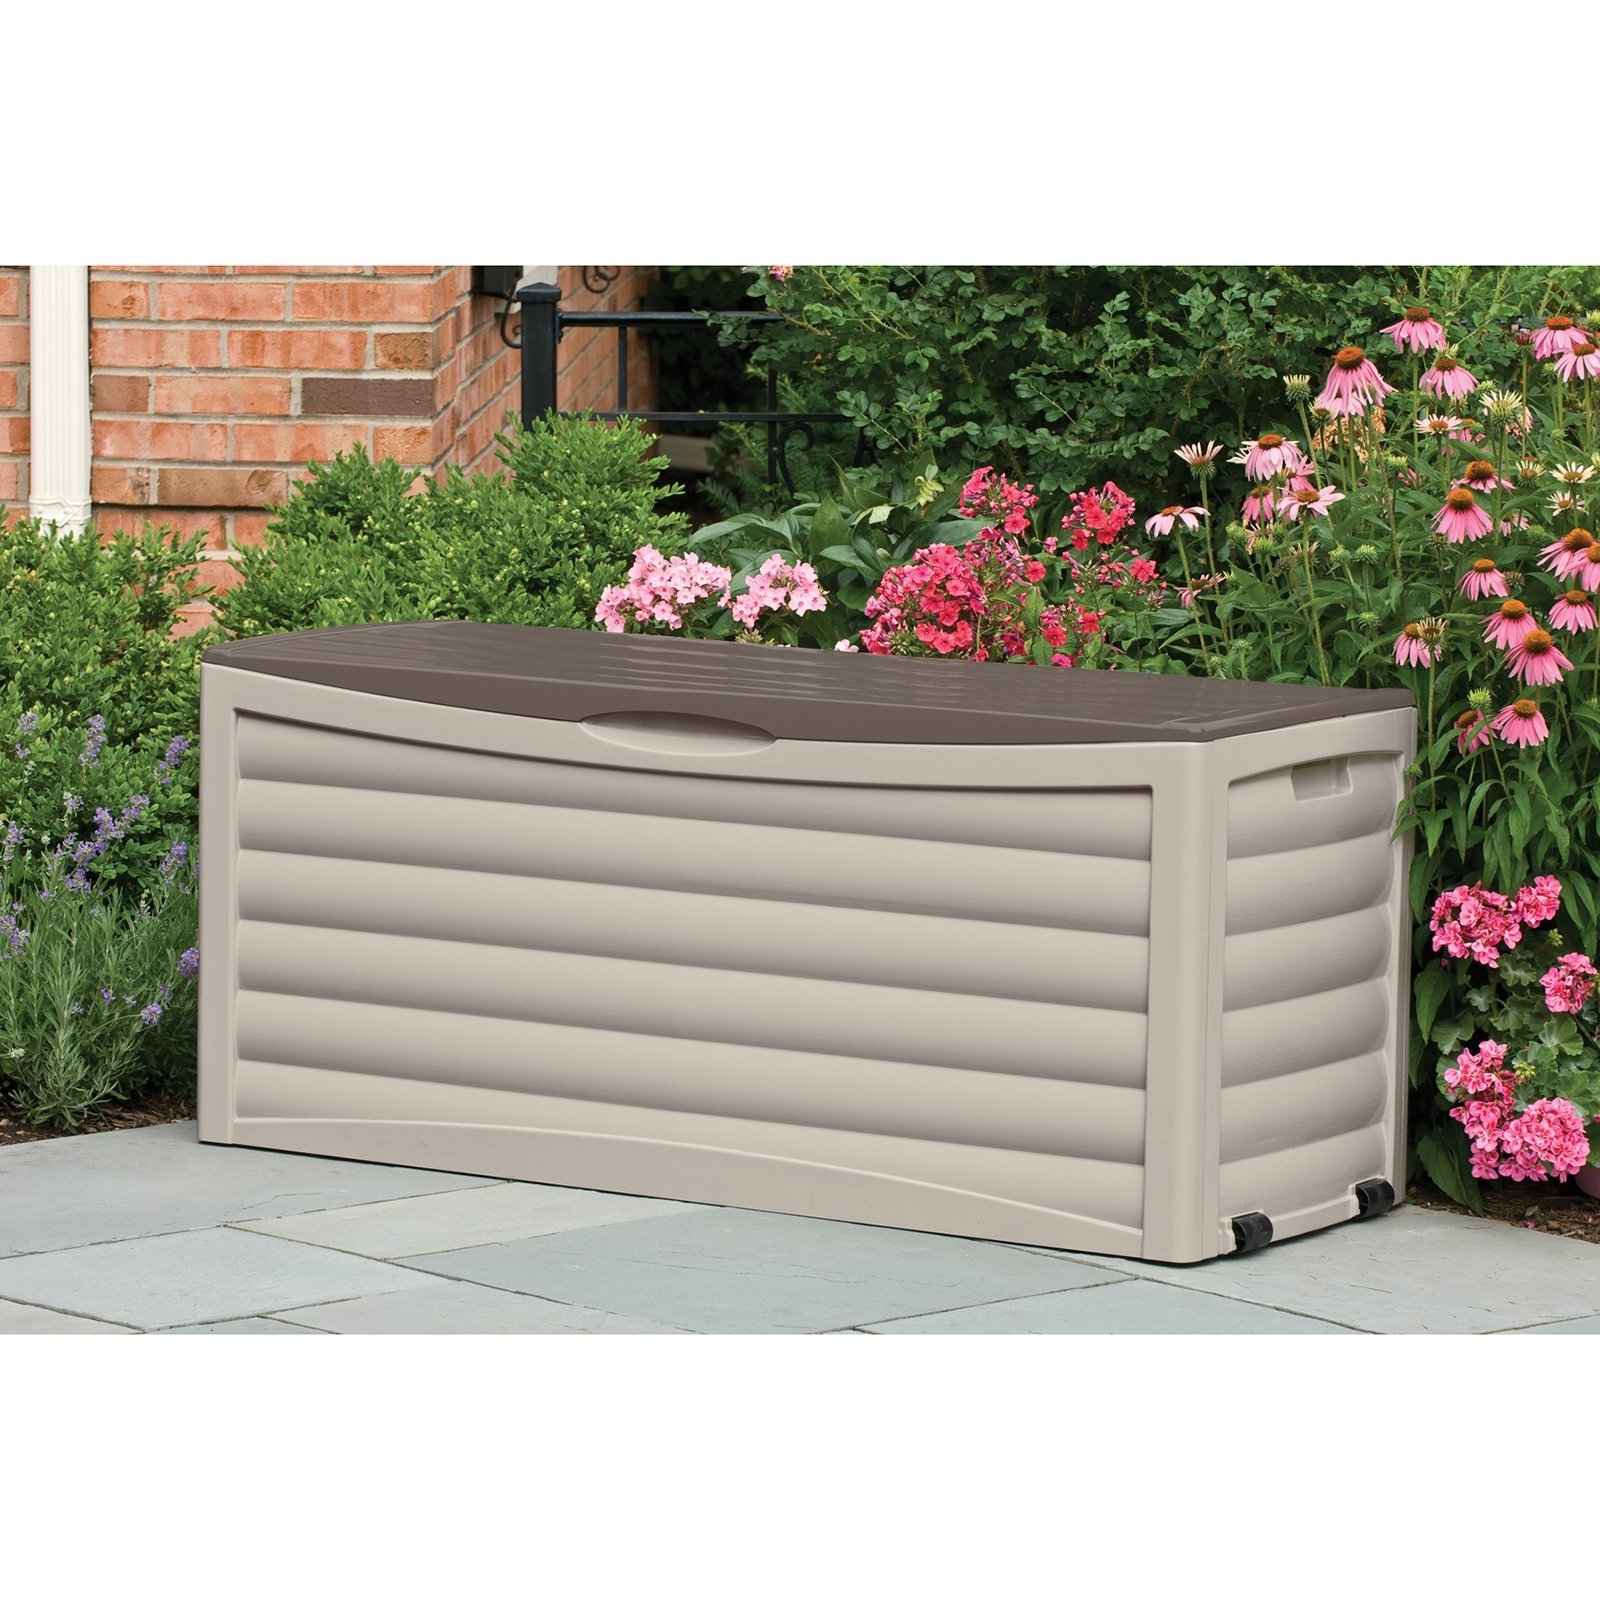 Image of: Keter Brightwood Resin 120 Gallon Outdoor Storage Deck Box Hayneedle Inside Outdoor Cushion Storage Bench Classic Outdoor Cushion Storage Bench